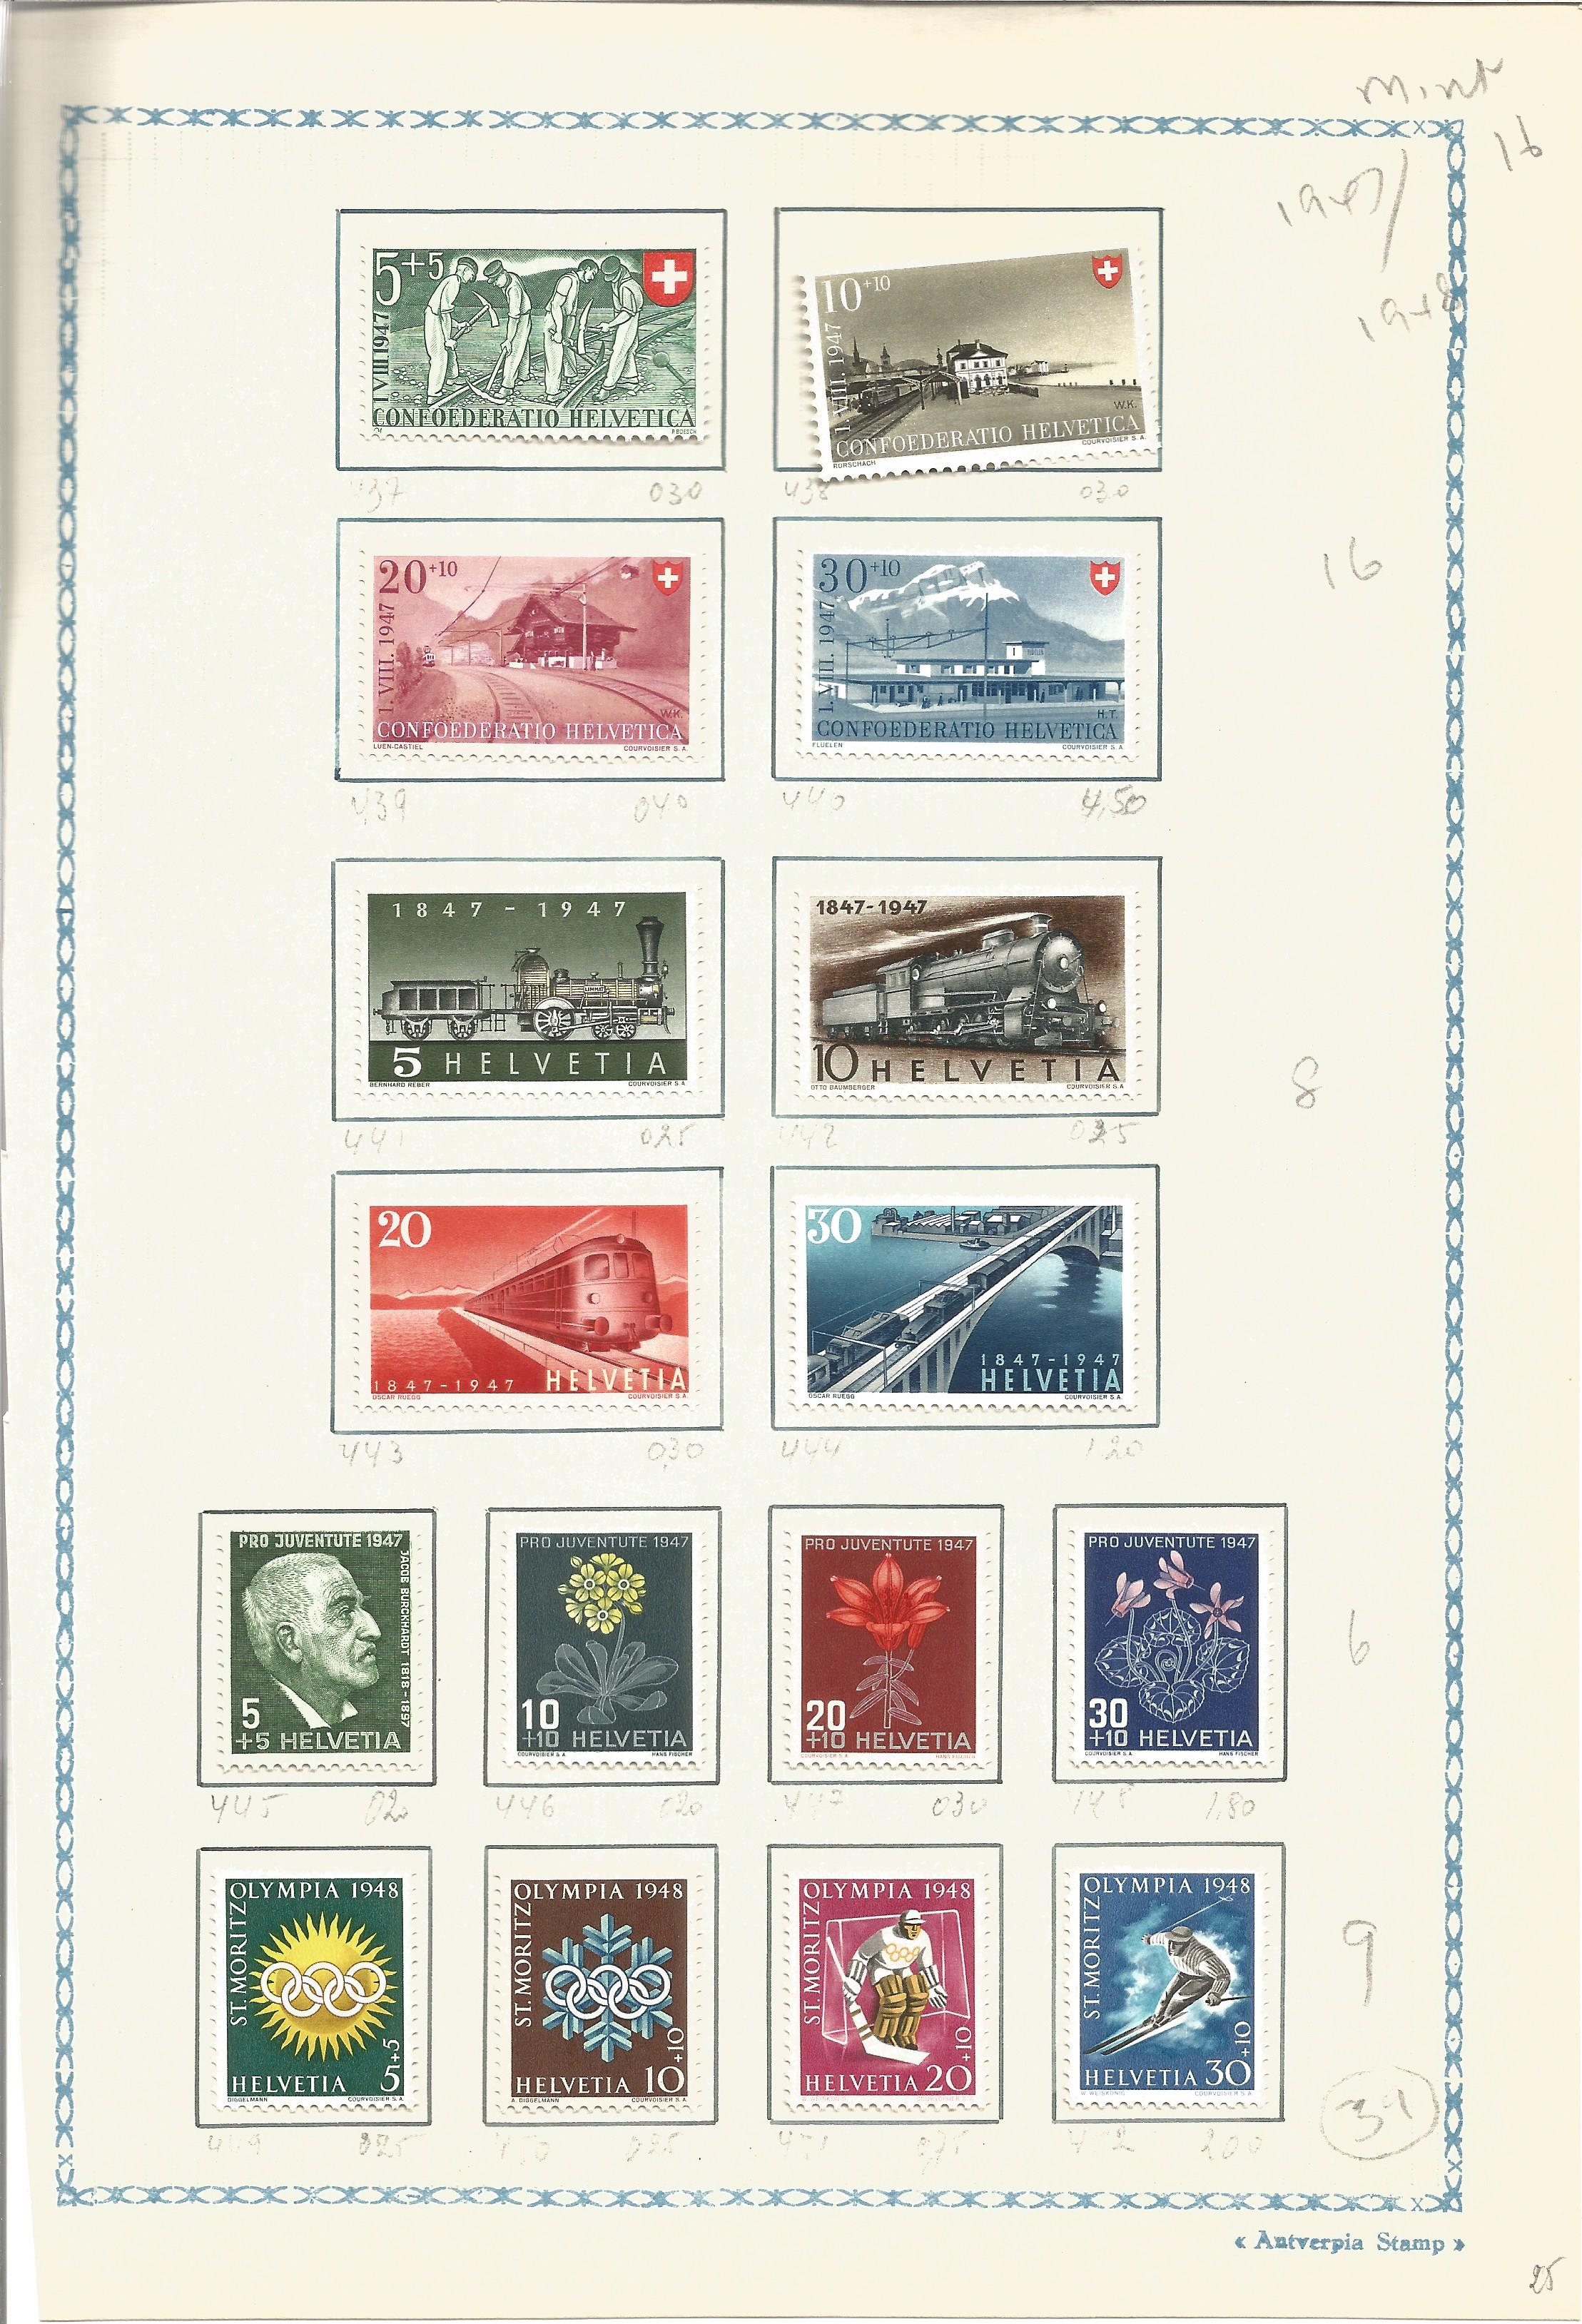 Swiss mint stamp collection. 16 stamps 1947/1948. Good condition. We combine postage on multiple